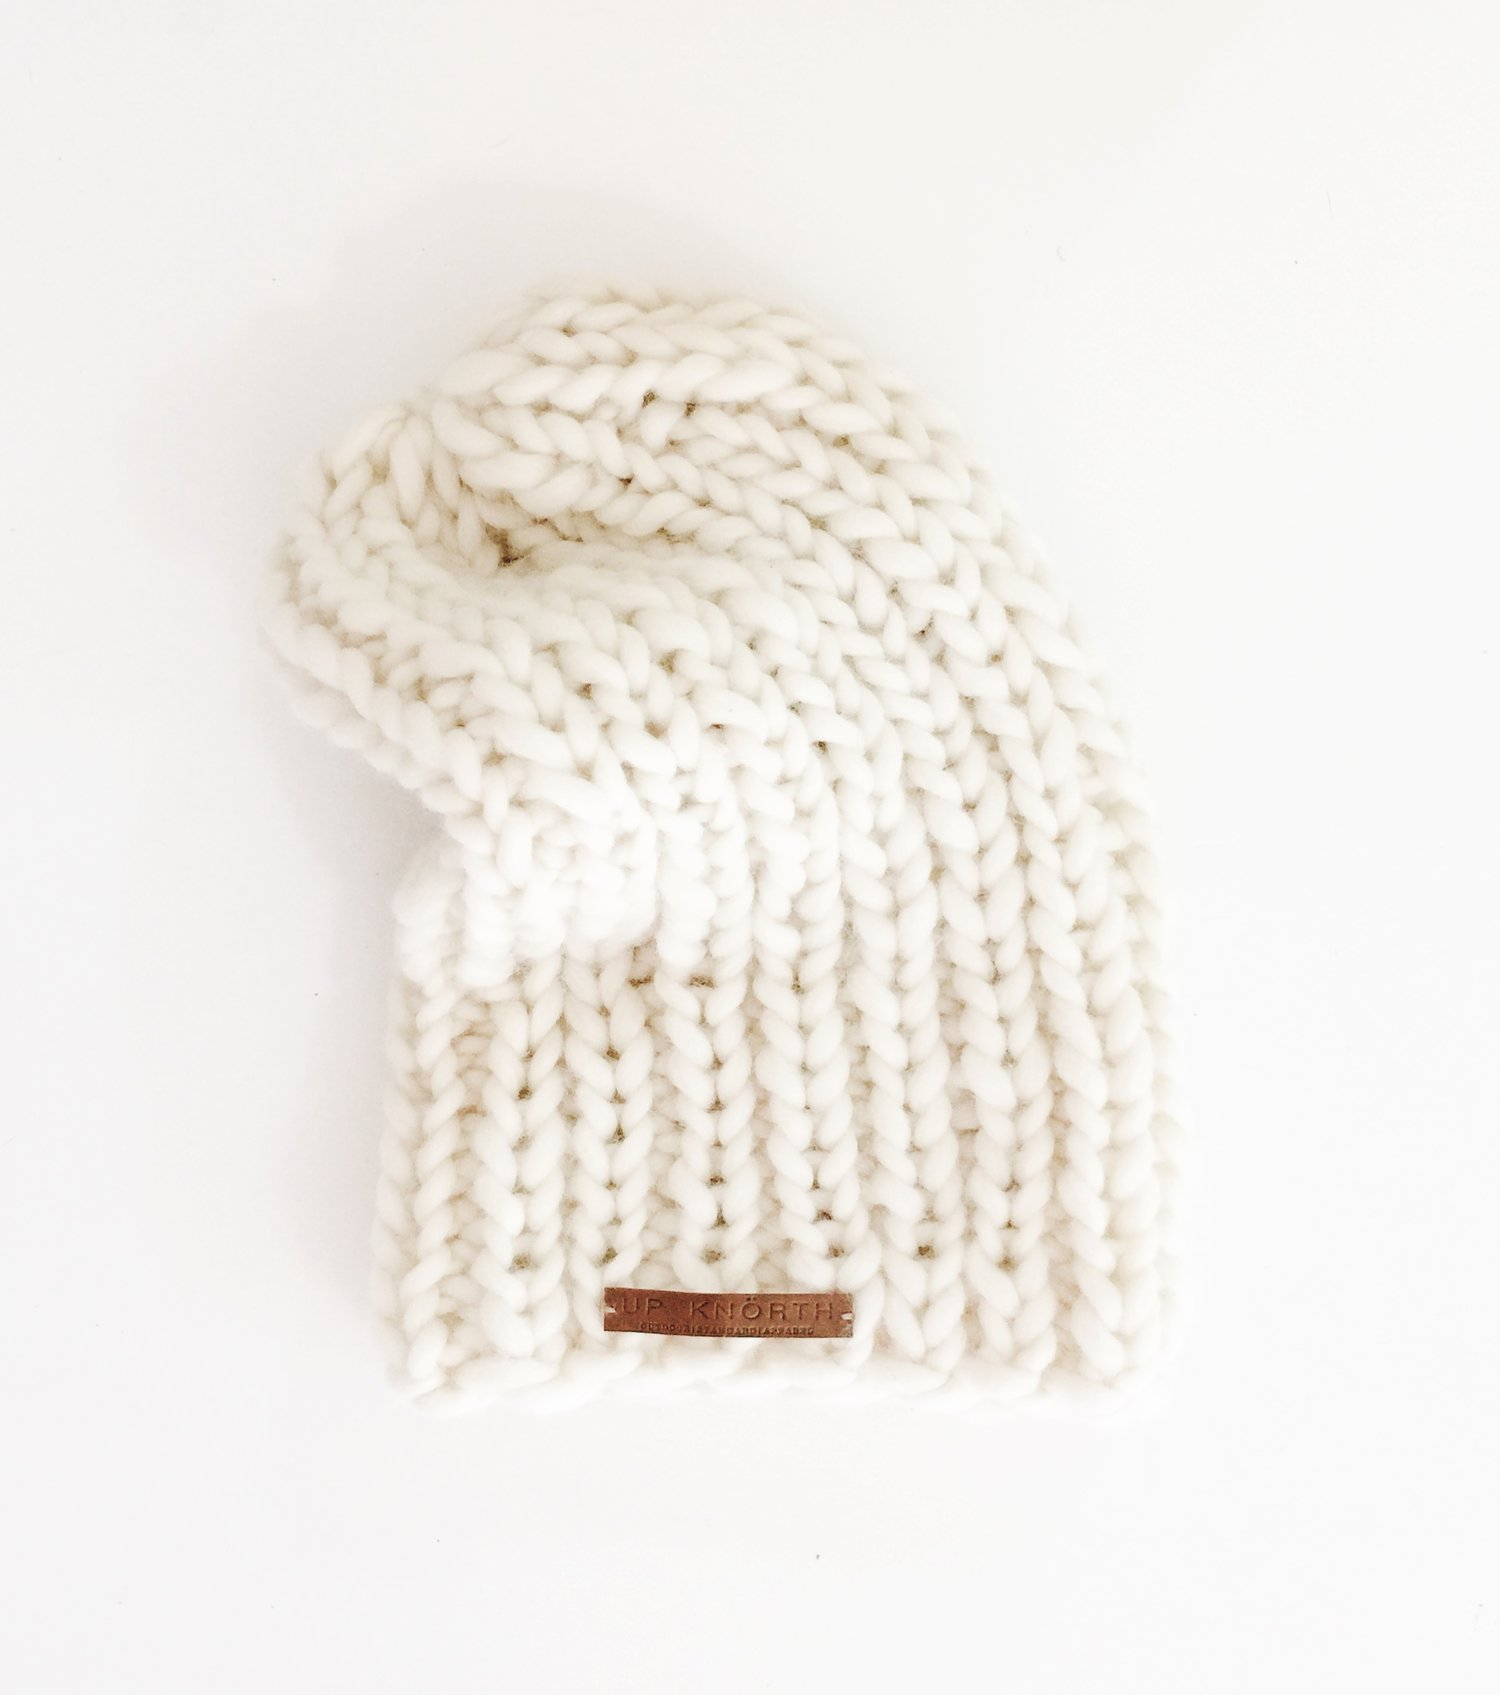 Wool Knit Toque — UP KNÖRTH 3978493e231